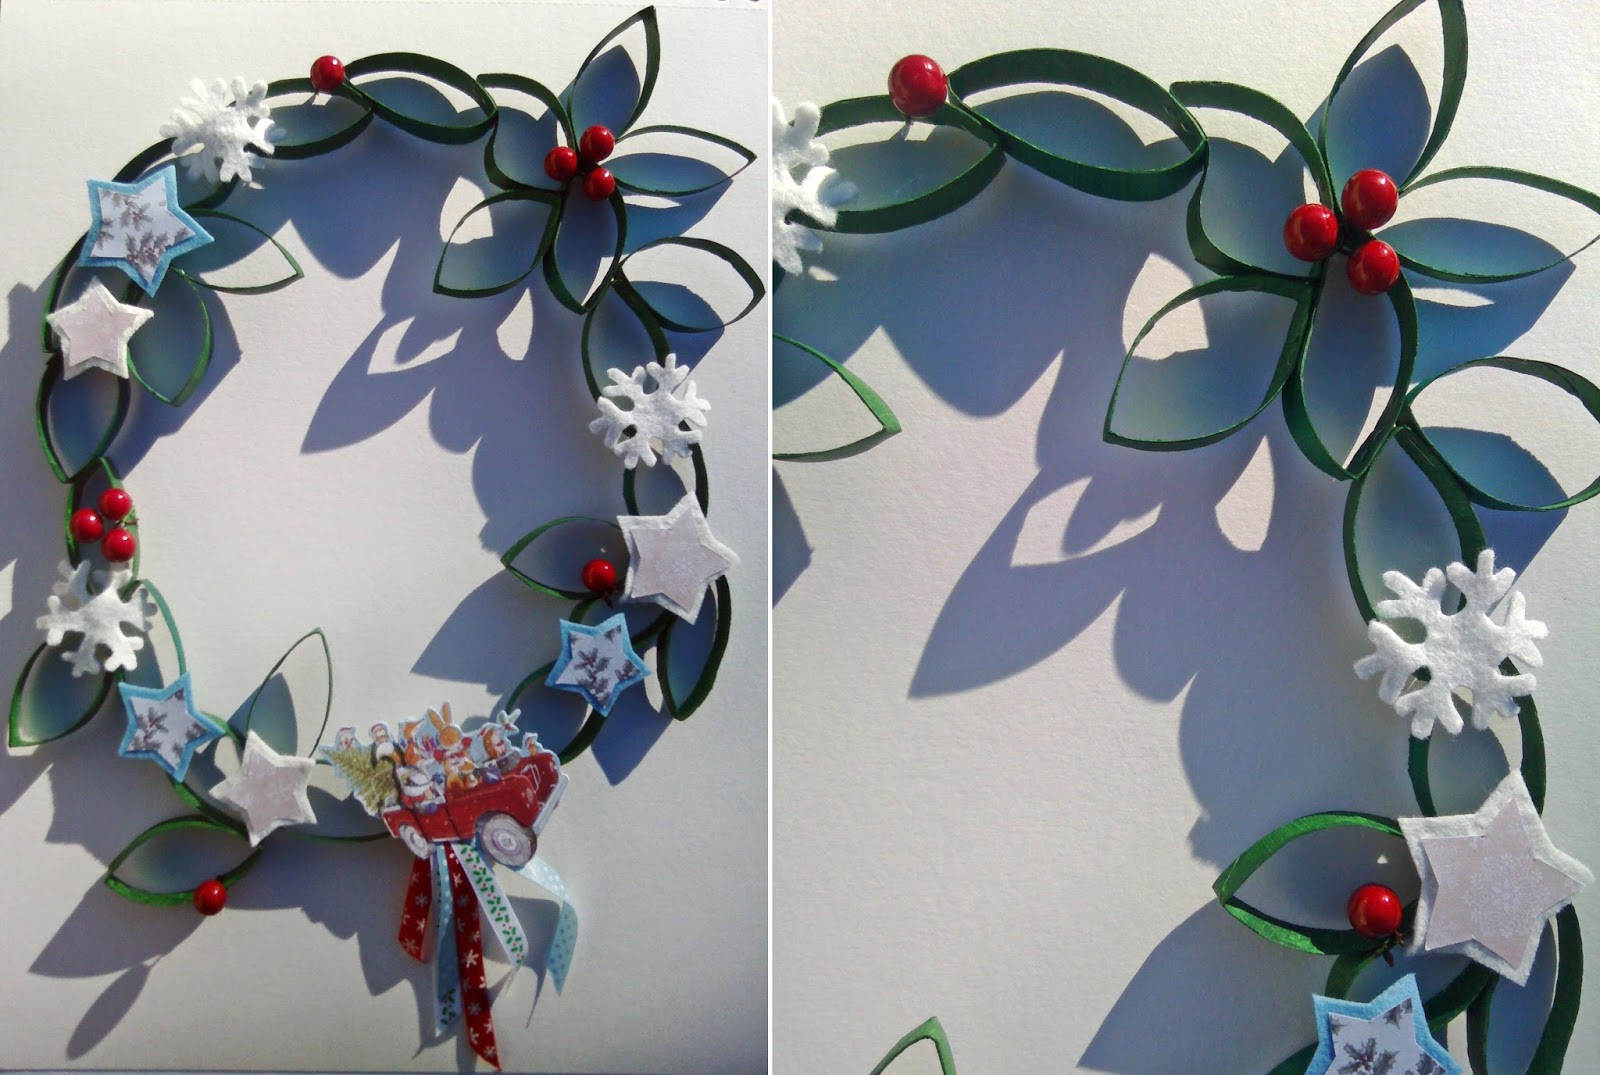 Fraizycircus diy couronne de no l en papier toilette for Decoration de noel en rouleau papier toilette